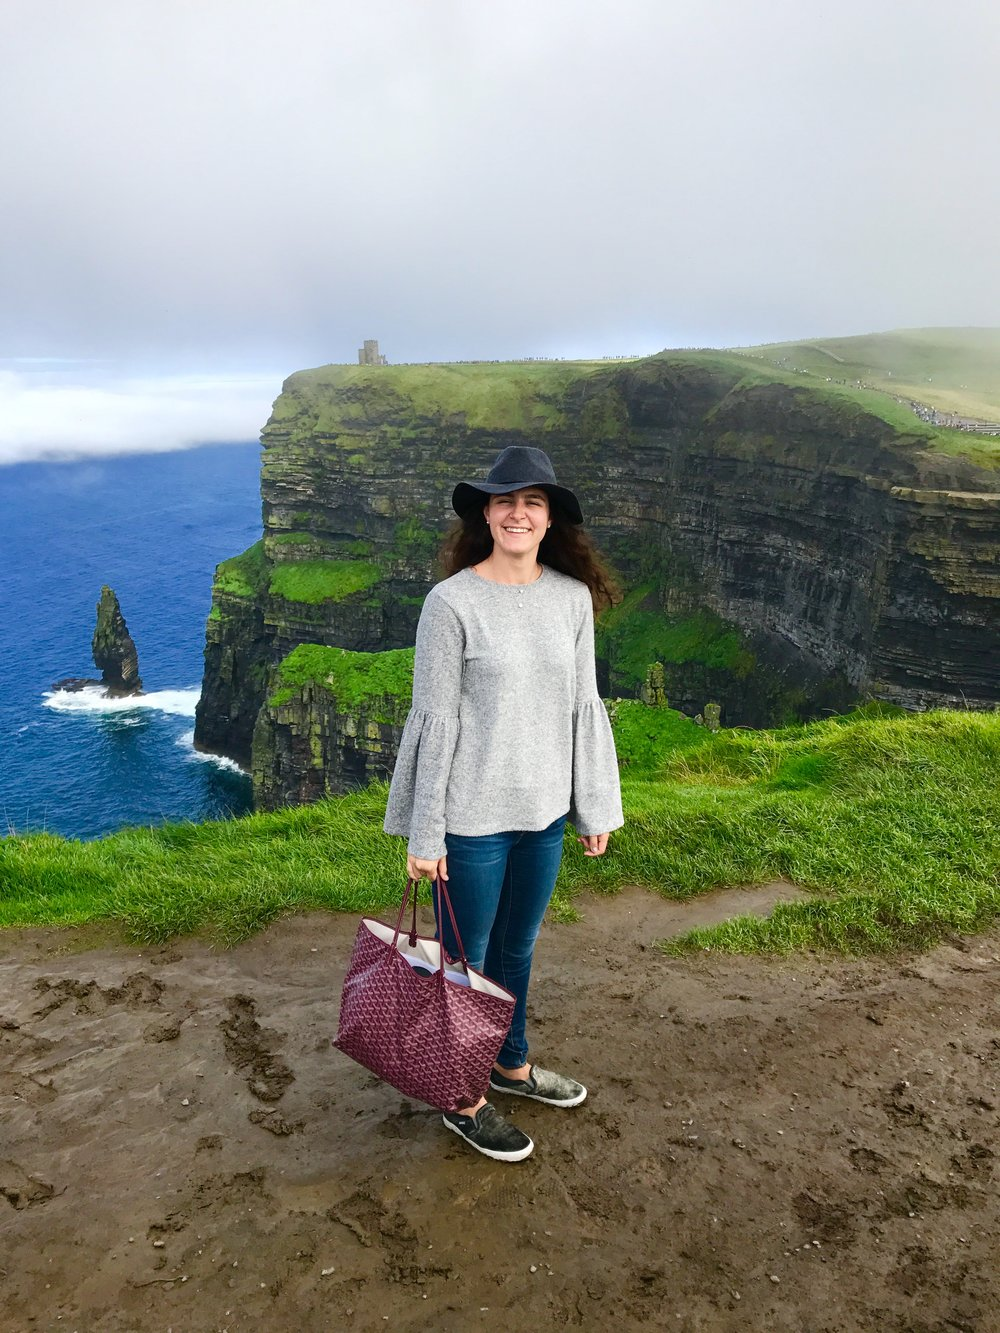 Ireland 09.05.17   The views at the Cliffs of Moher never cease to amaze me. These warm & comfortable closet staples are super versatile and have been my go-to items in Ireland this year! Click  here  to shop!